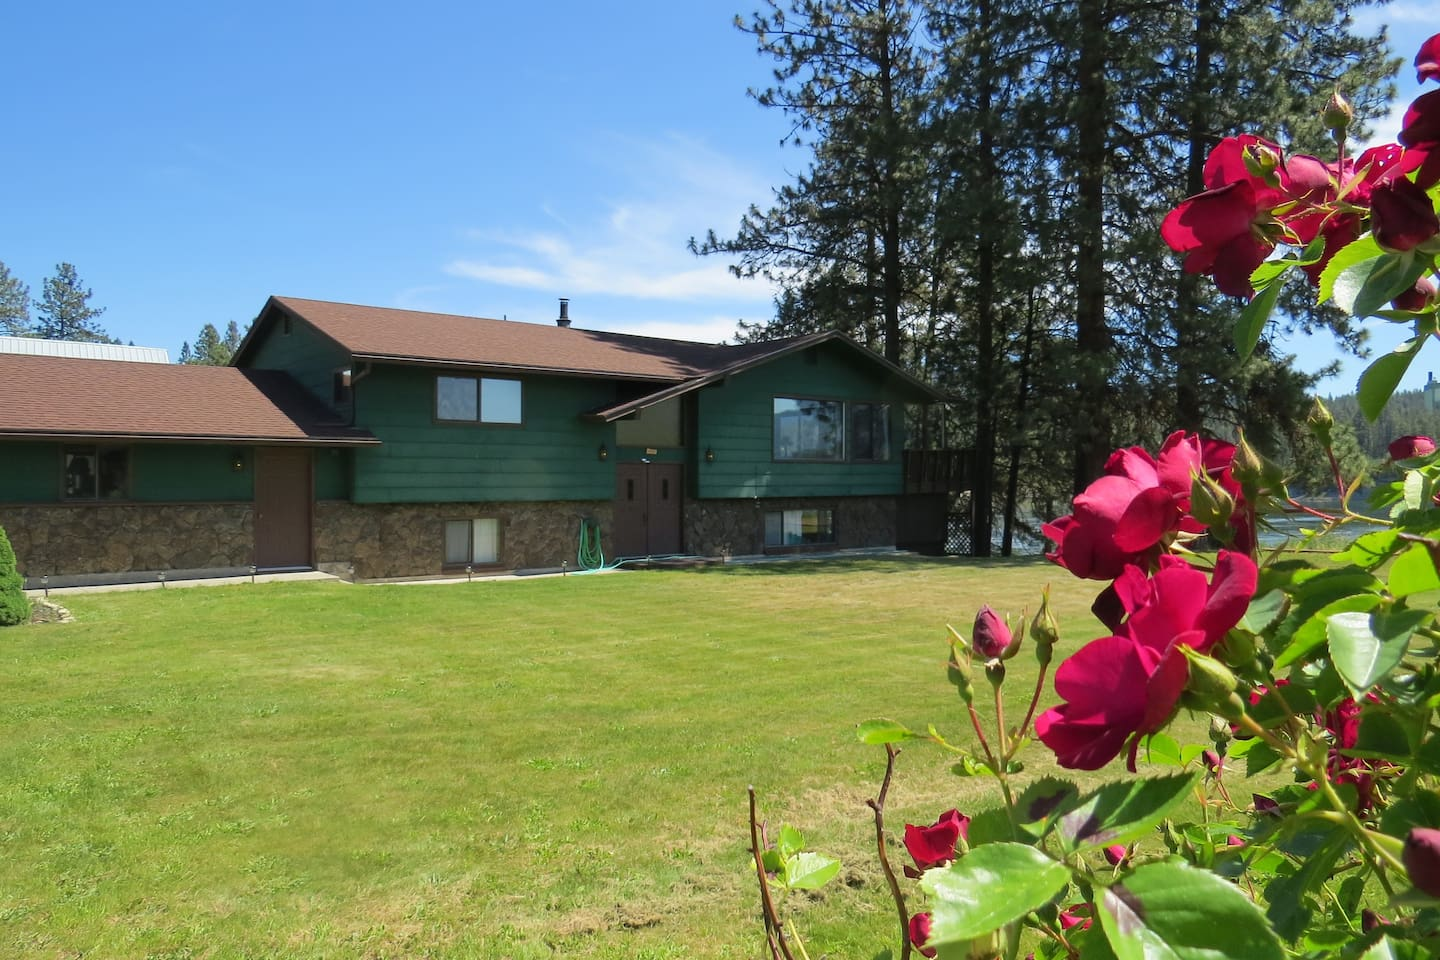 Riverwood Whole House Rental includes 4 bedrooms, 3 bathrooms, 2 kitchens, hi-speed WiFi, 3-4 person hot tub, upper and lower decks, a wide lawn, and spectacular views!